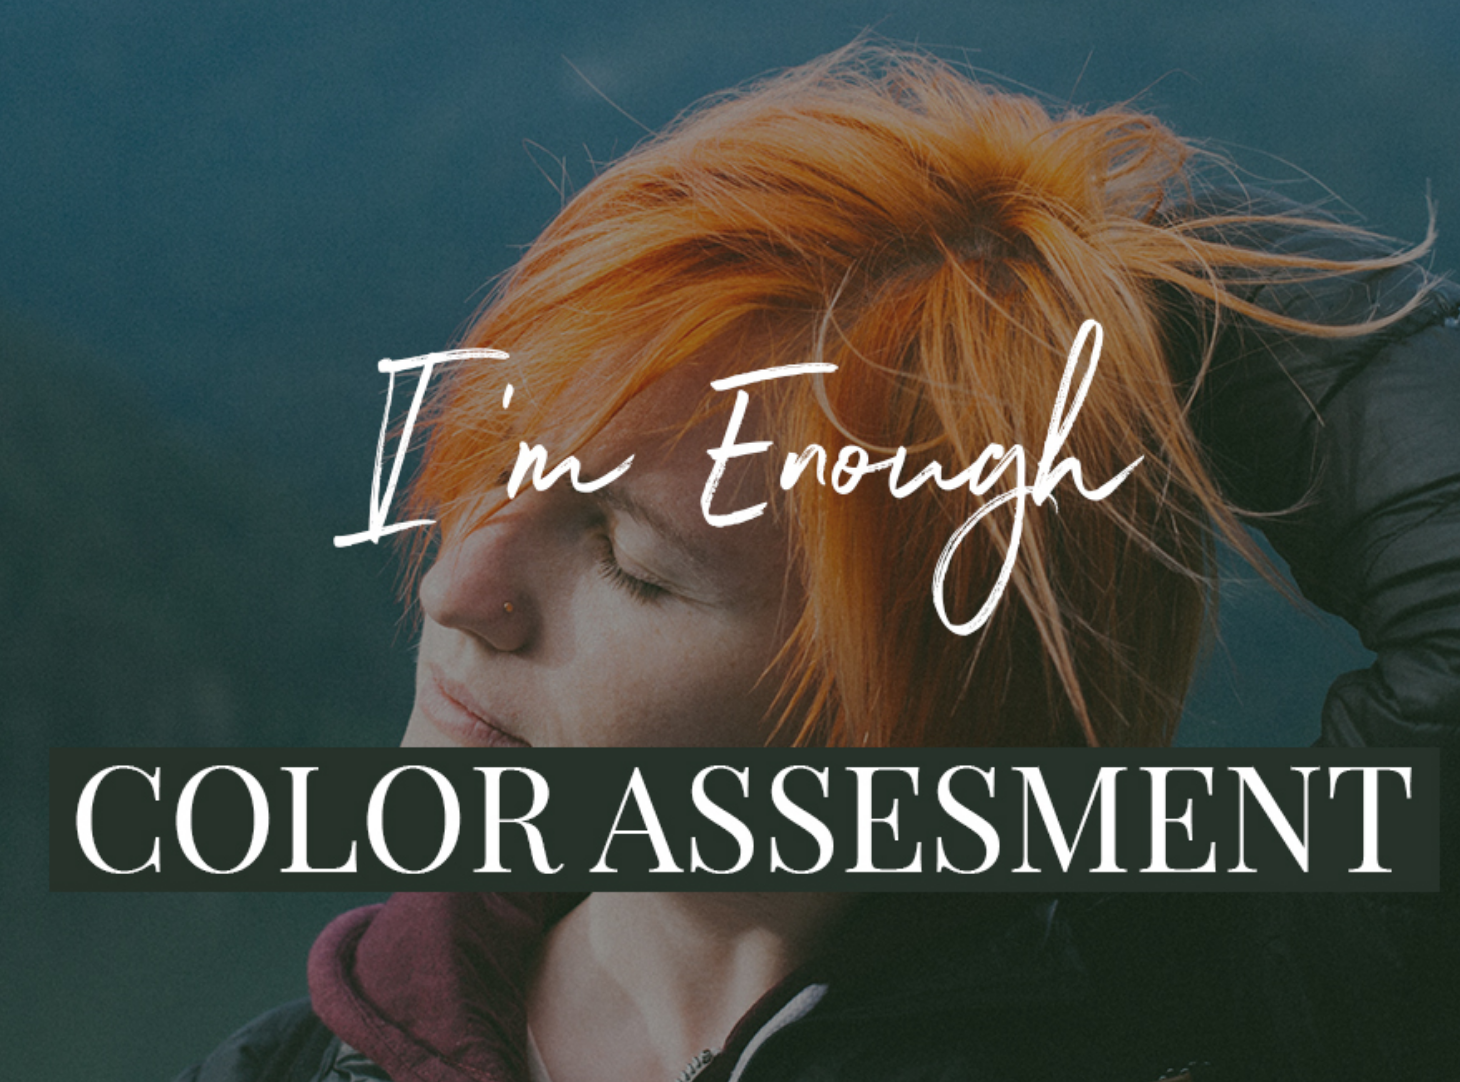 What is the Color Assessment?